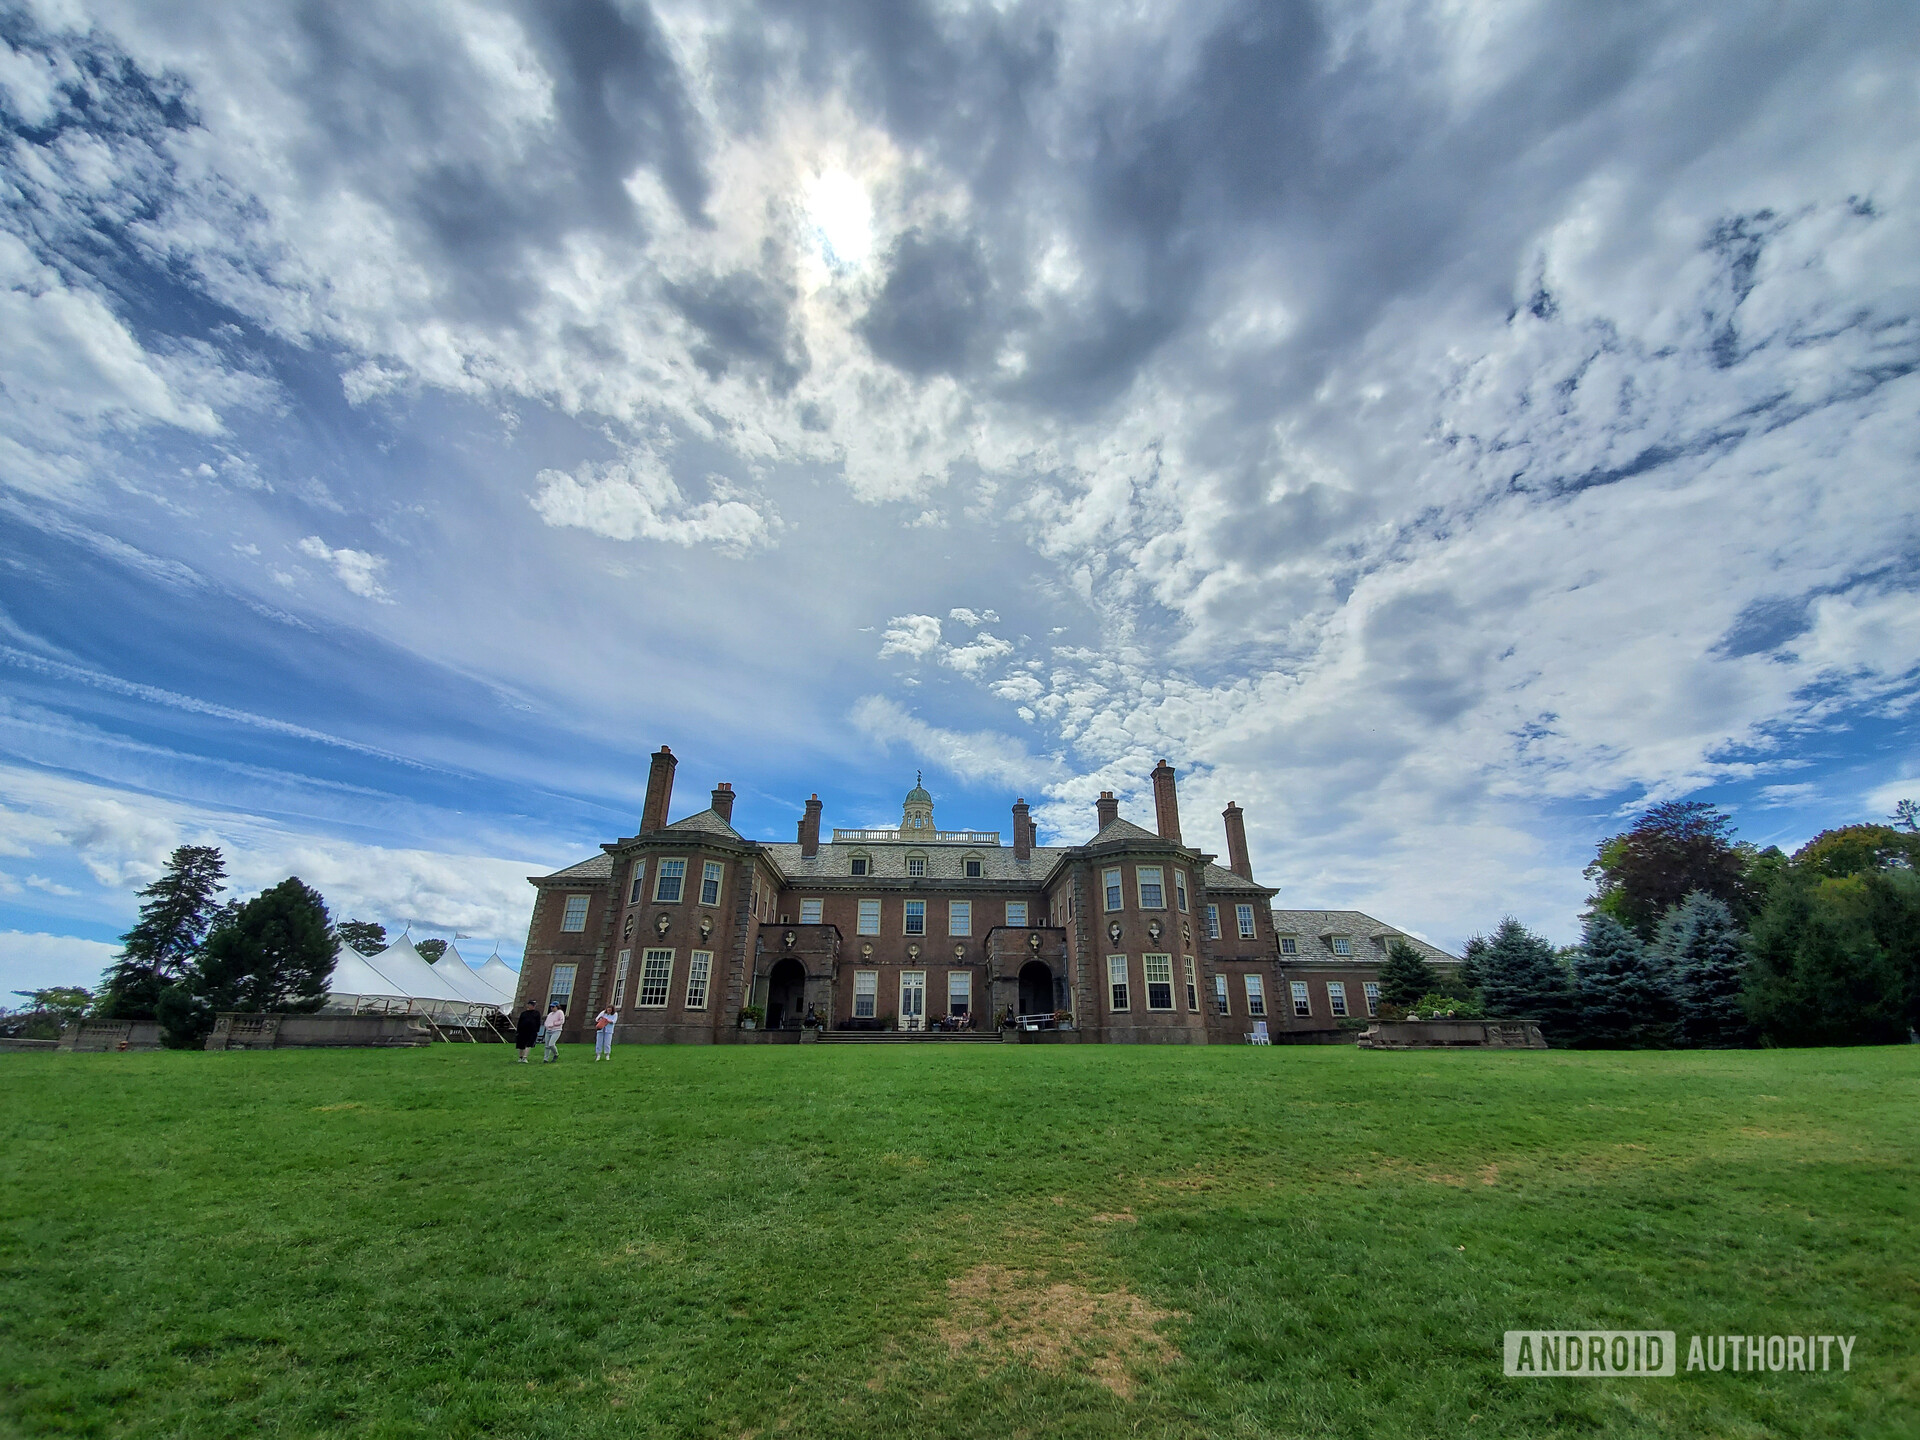 Samsung Galaxy Note 10 Plus camera review landscape castle on hill